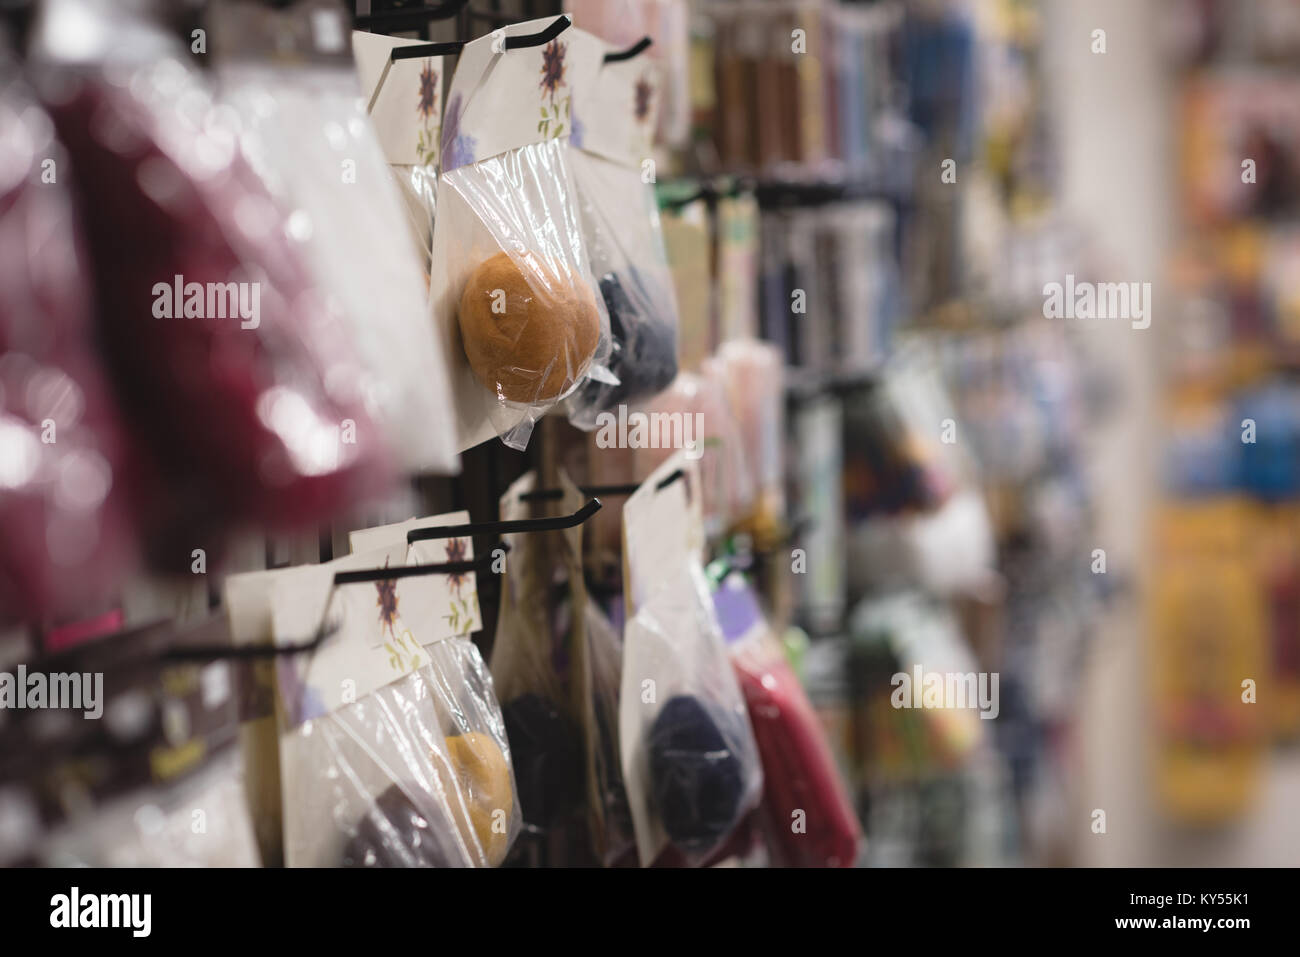 Pack of woollen ball display in the shop - Stock Image